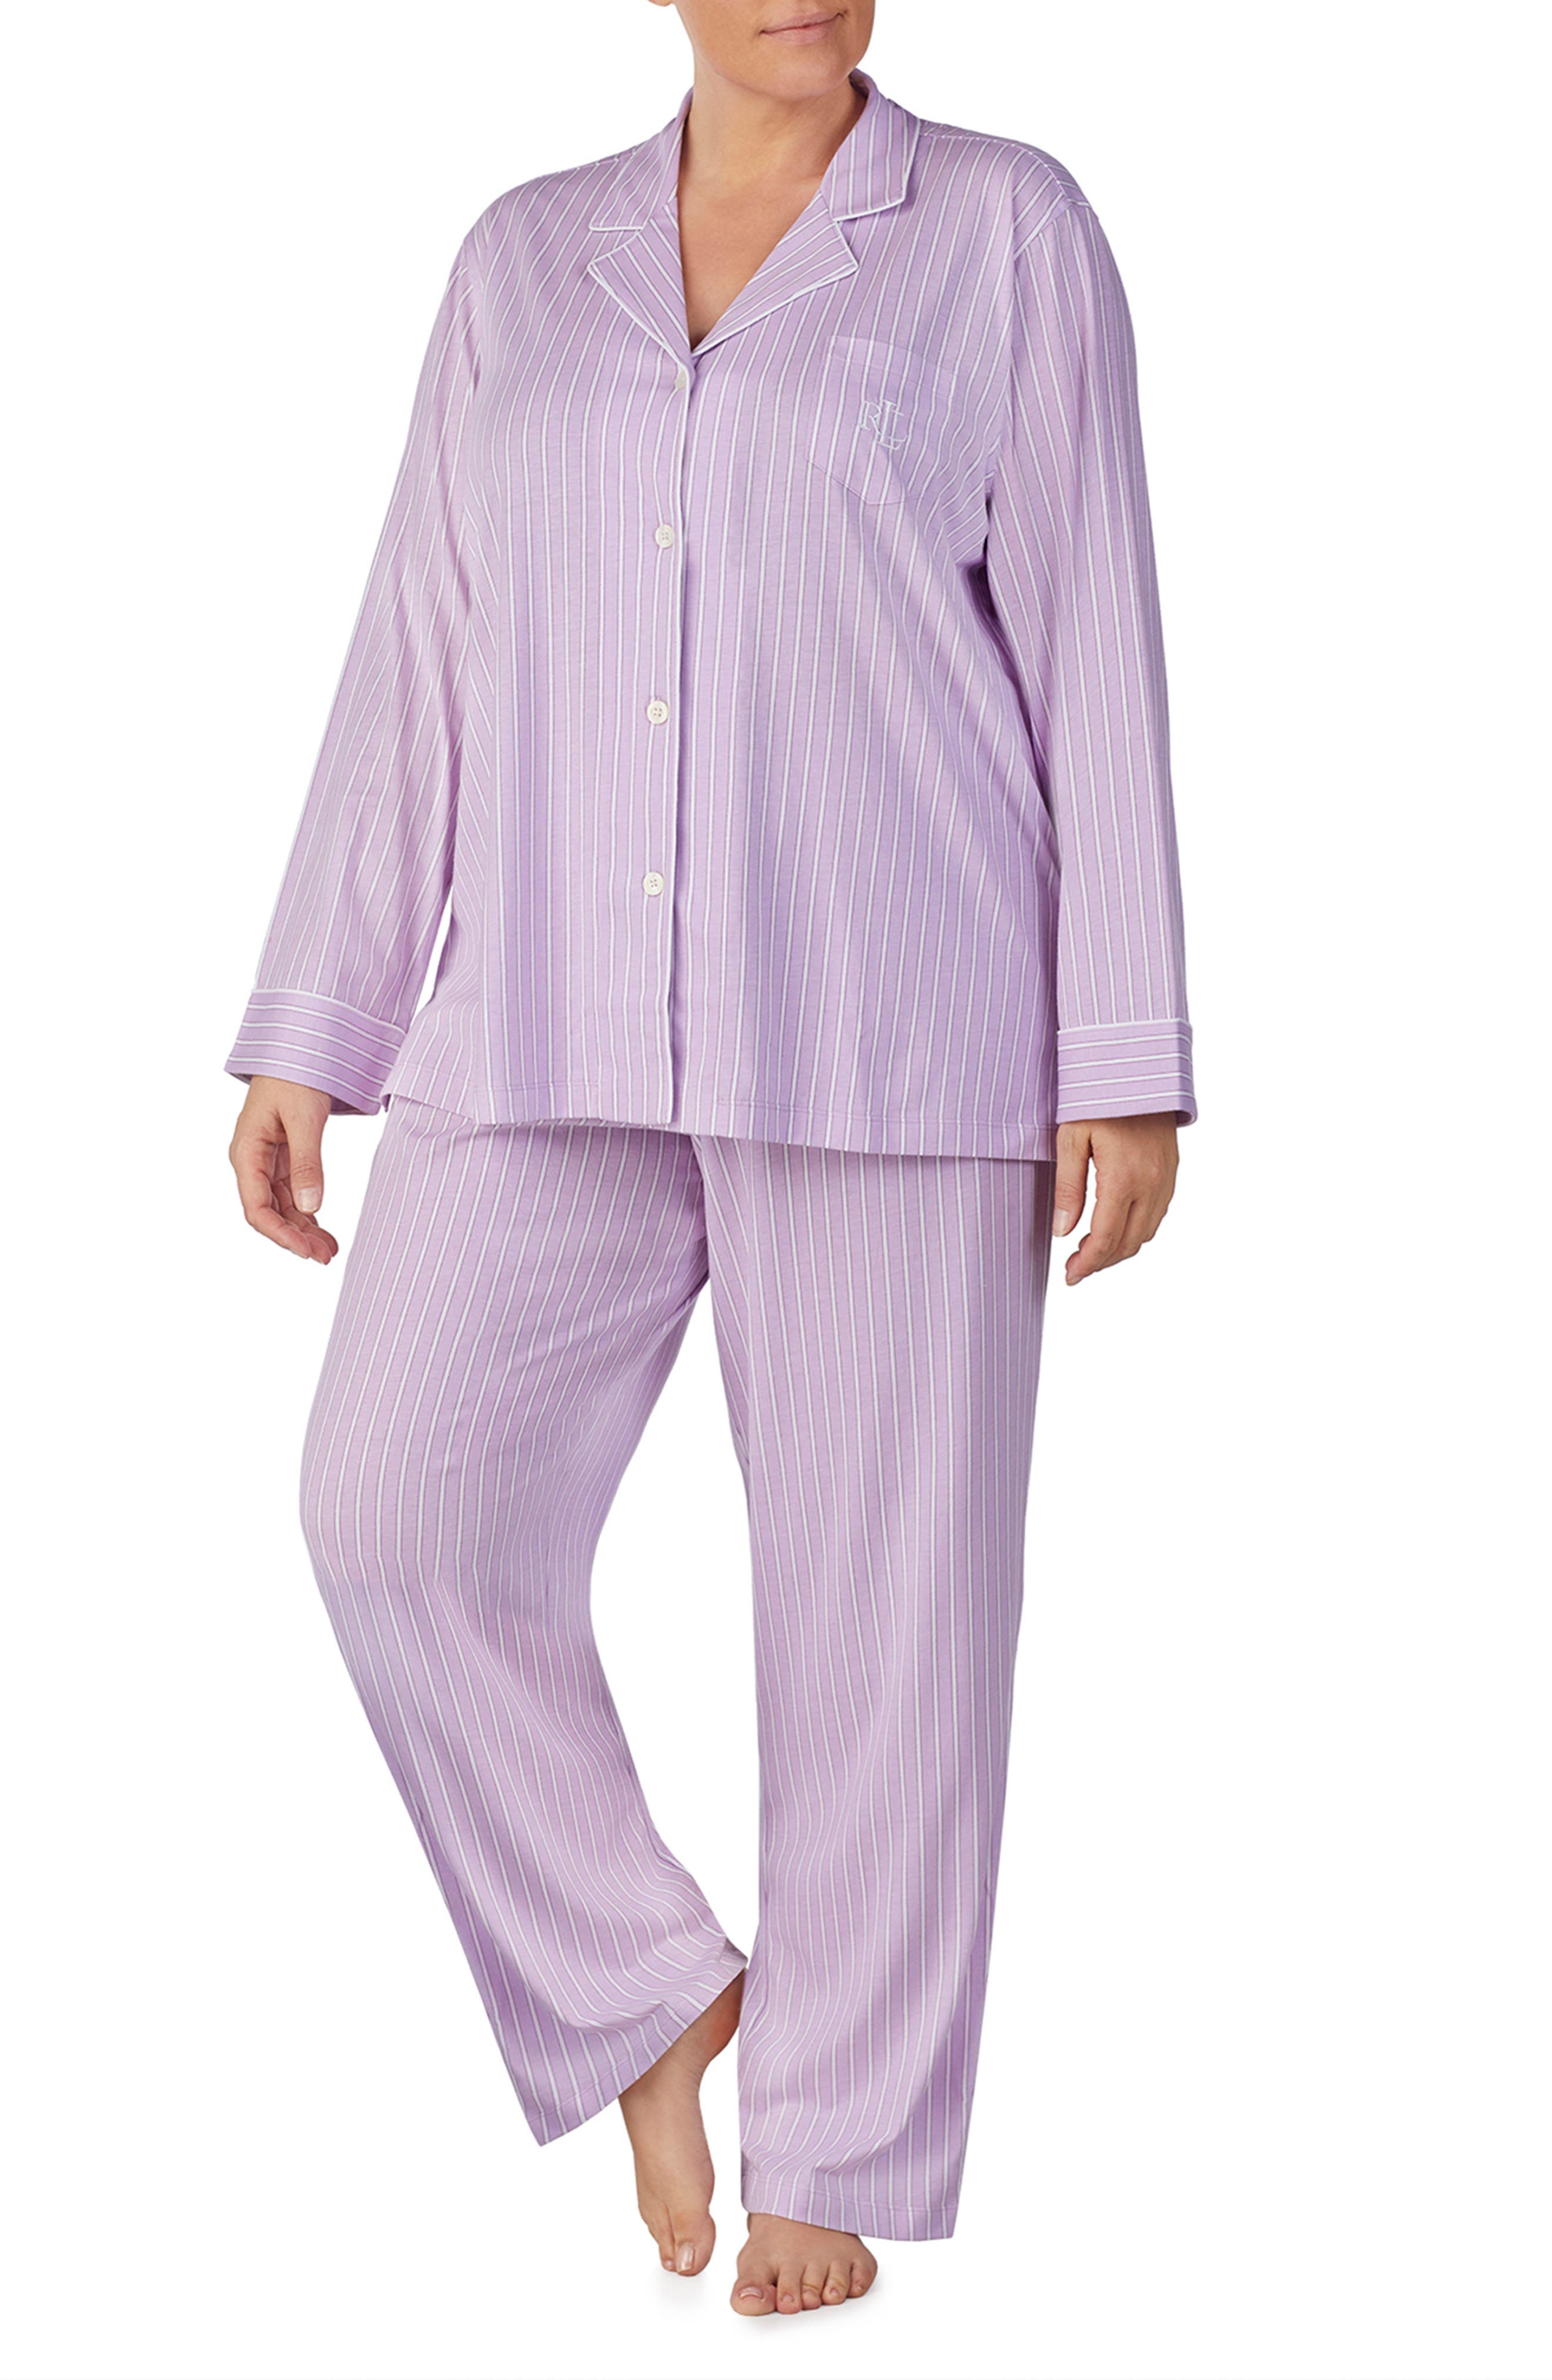 Stripe Pajamas,                             Main thumbnail 1, color,                             508